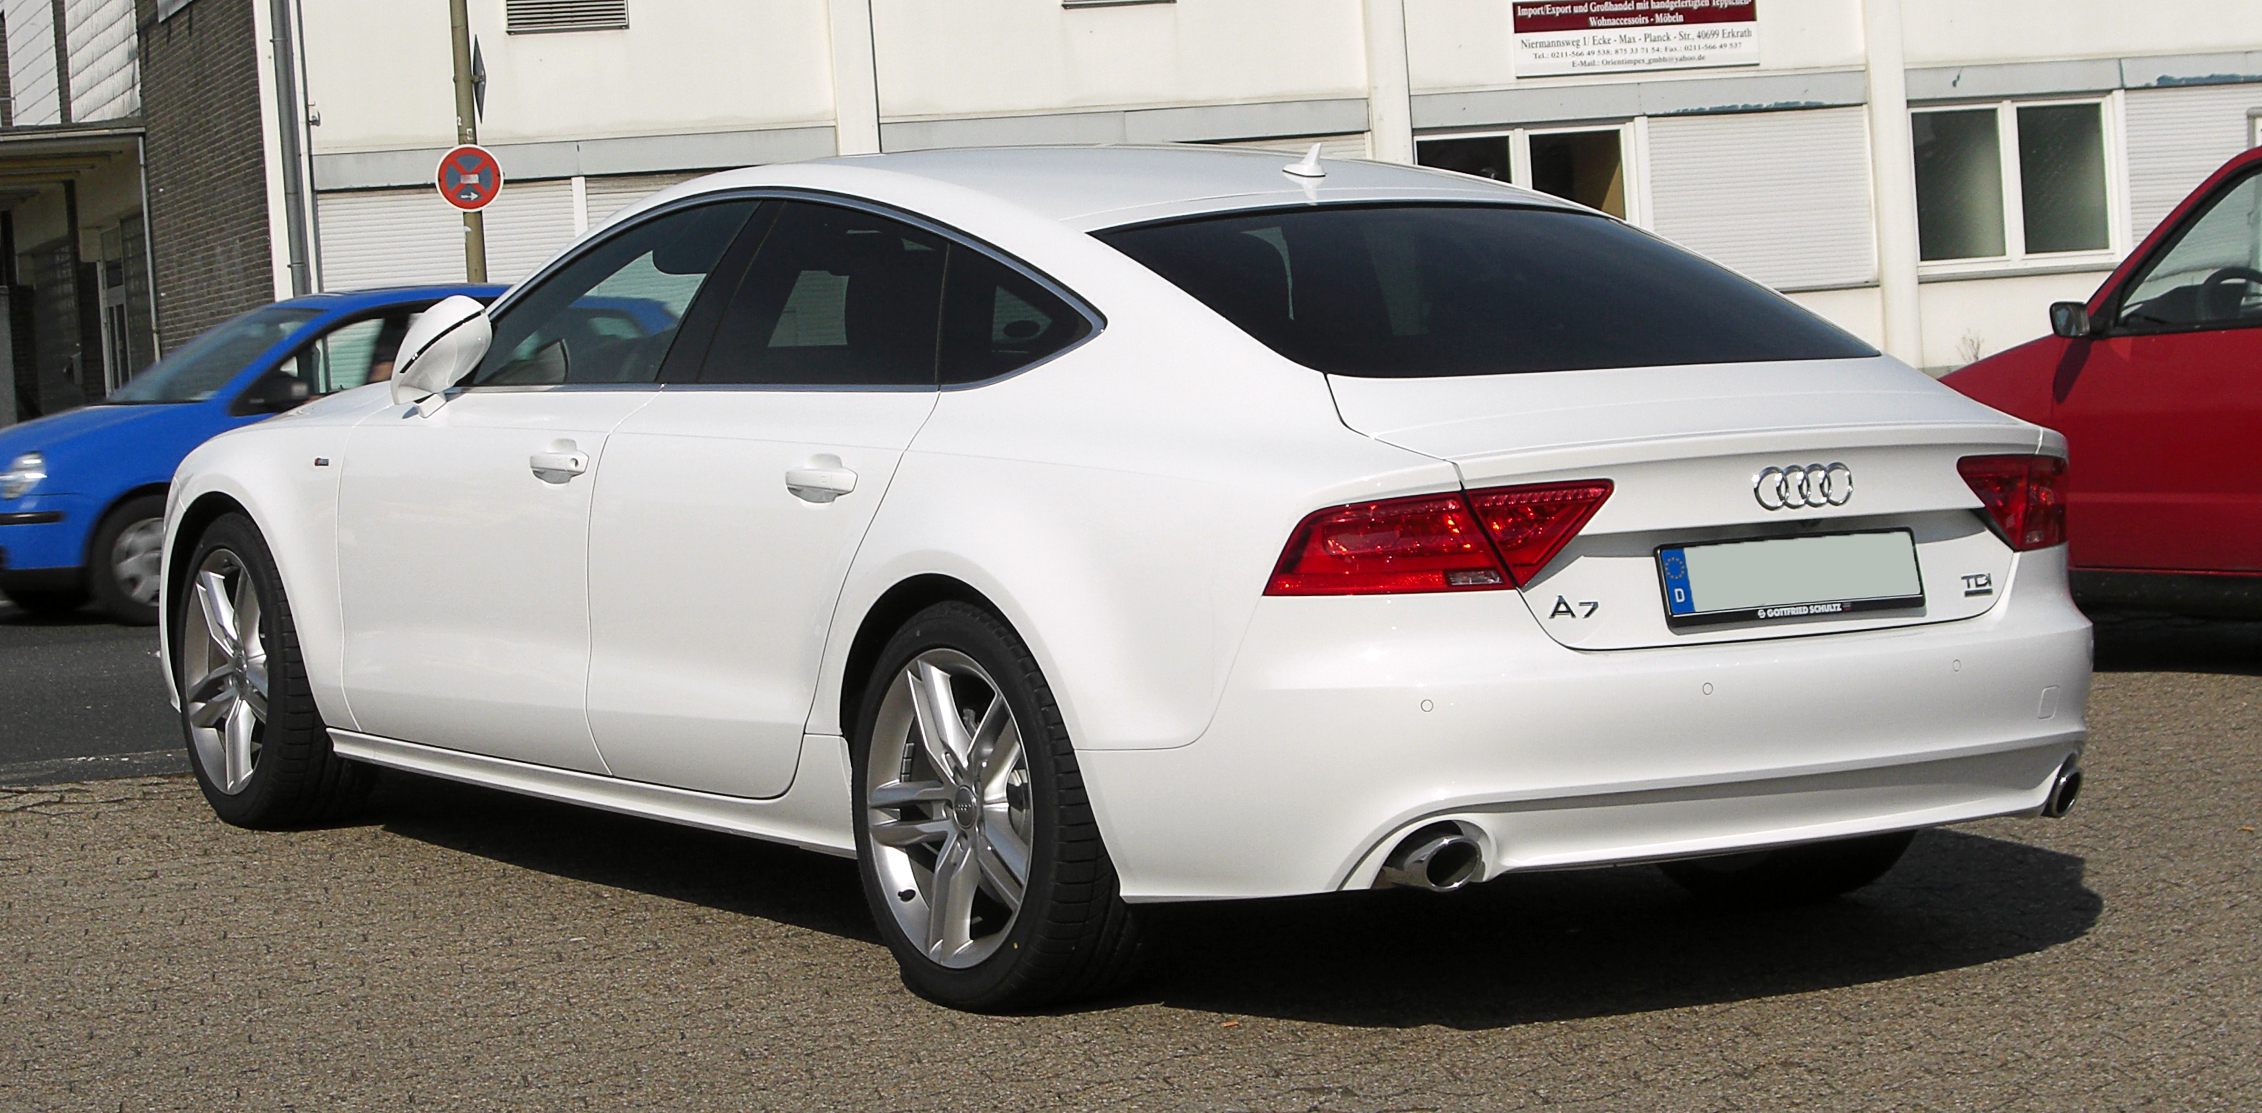 Used AUDI A5 2010 cars for sale on Auto Trader